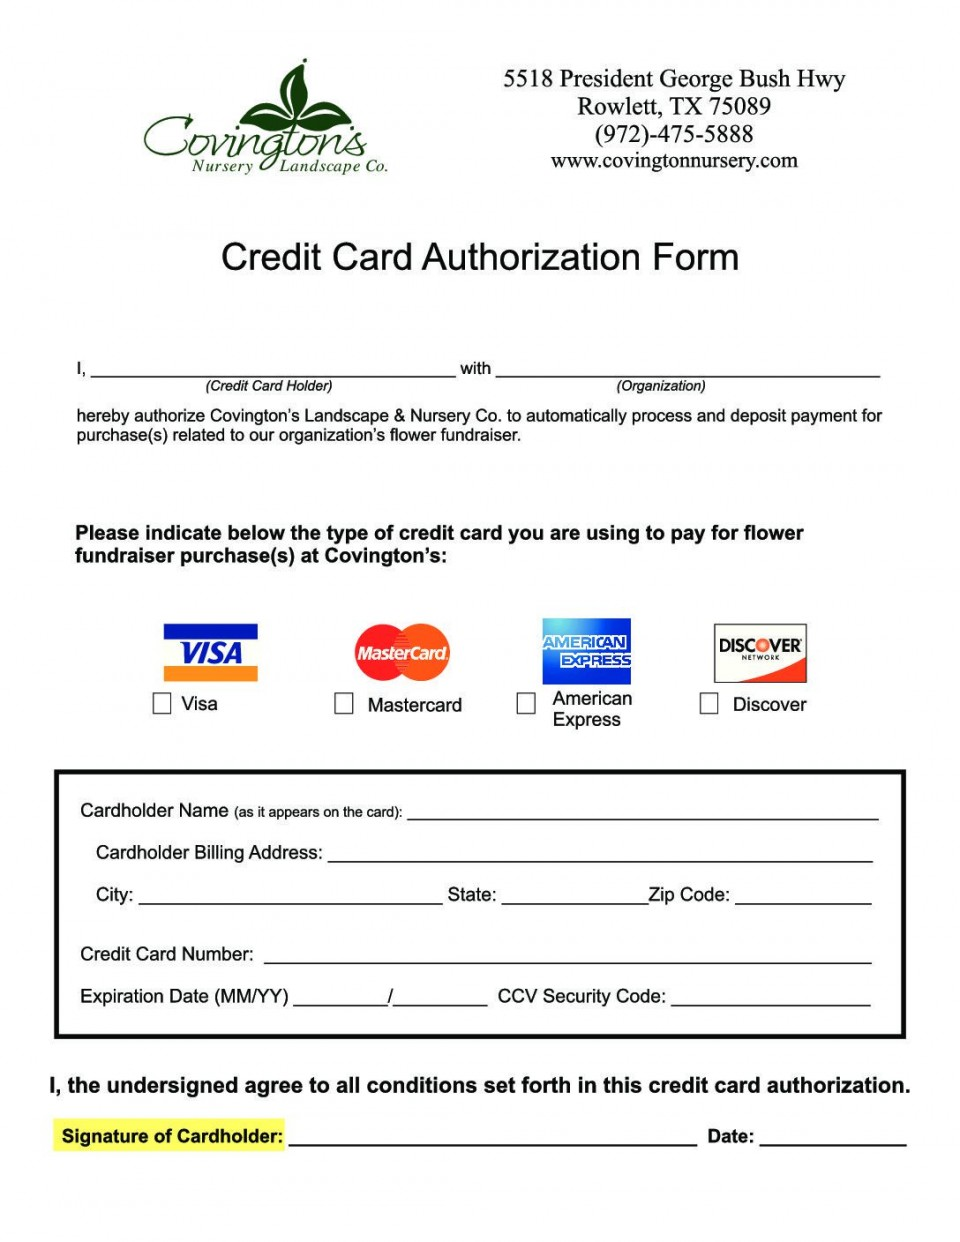 008 Marvelou Credit Card Authorization Template Photo  Form For Travel Agency Free Download Google Doc960